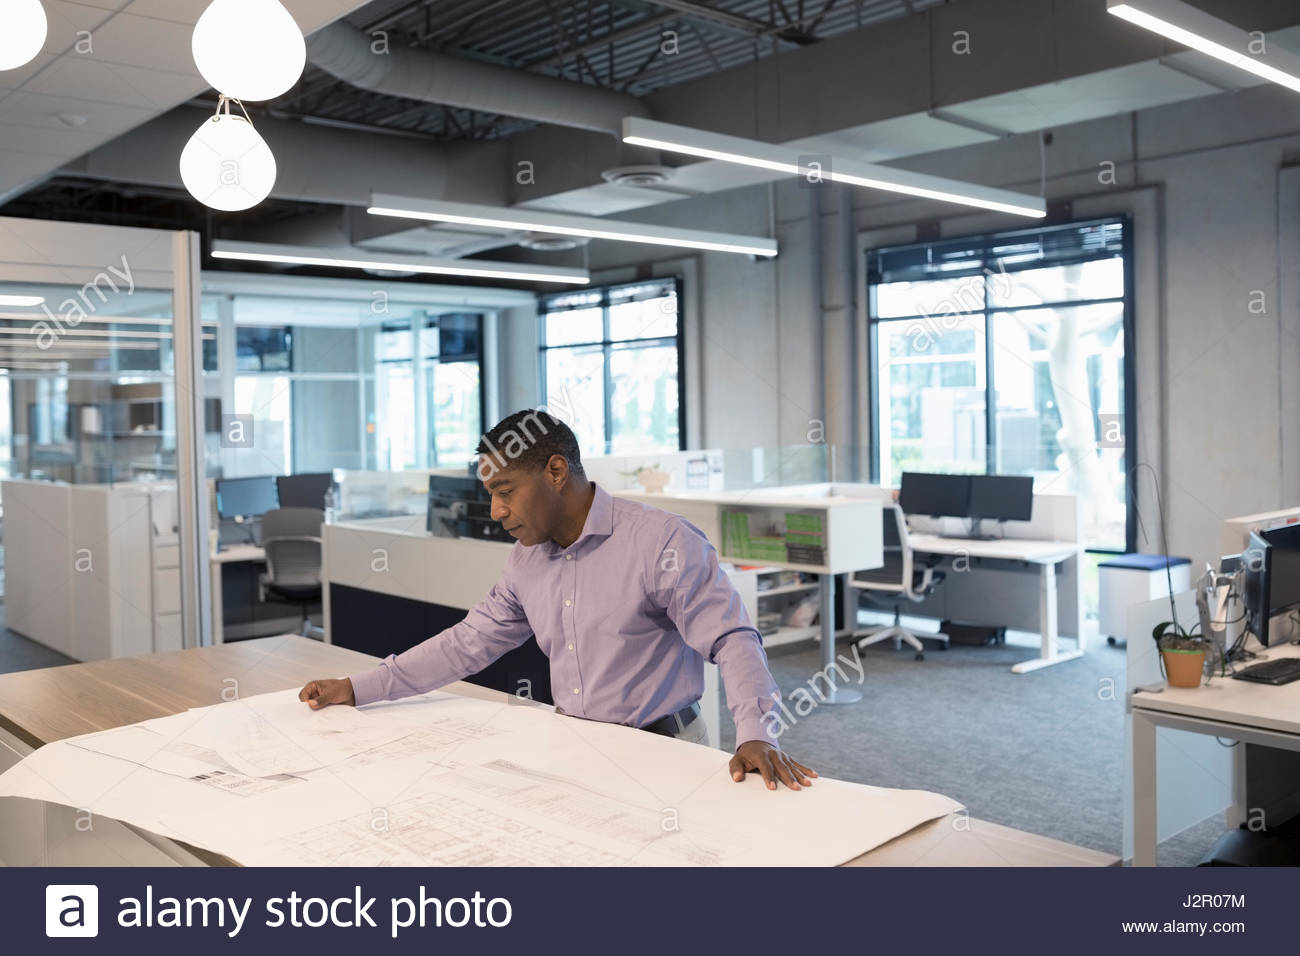 Male African American architect drafting and reviewing blueprints in office Stock Photo